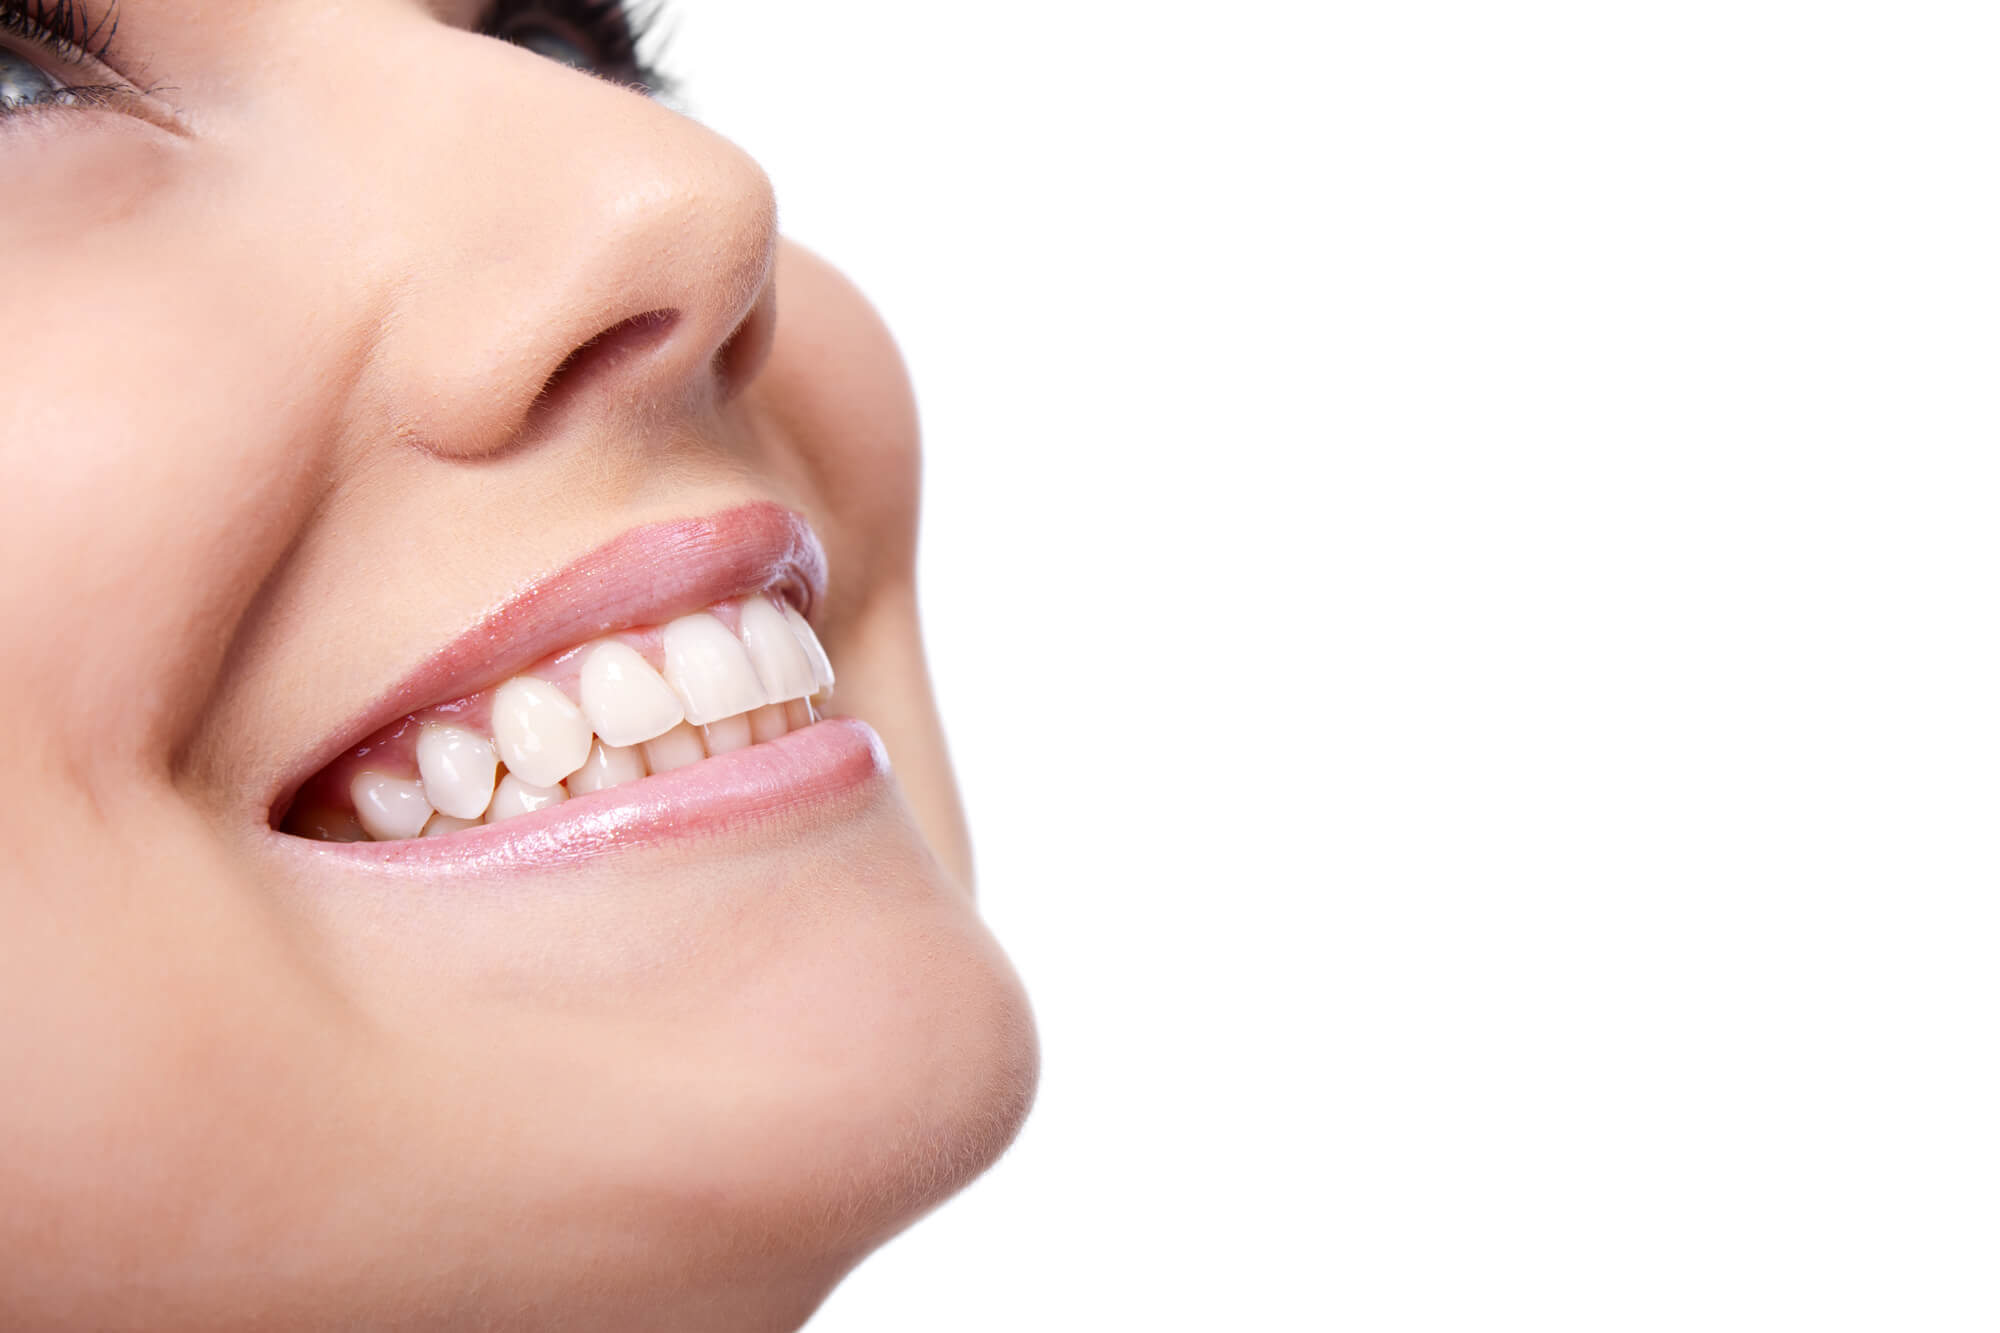 woman who saw an Orthodontist in Hollywood